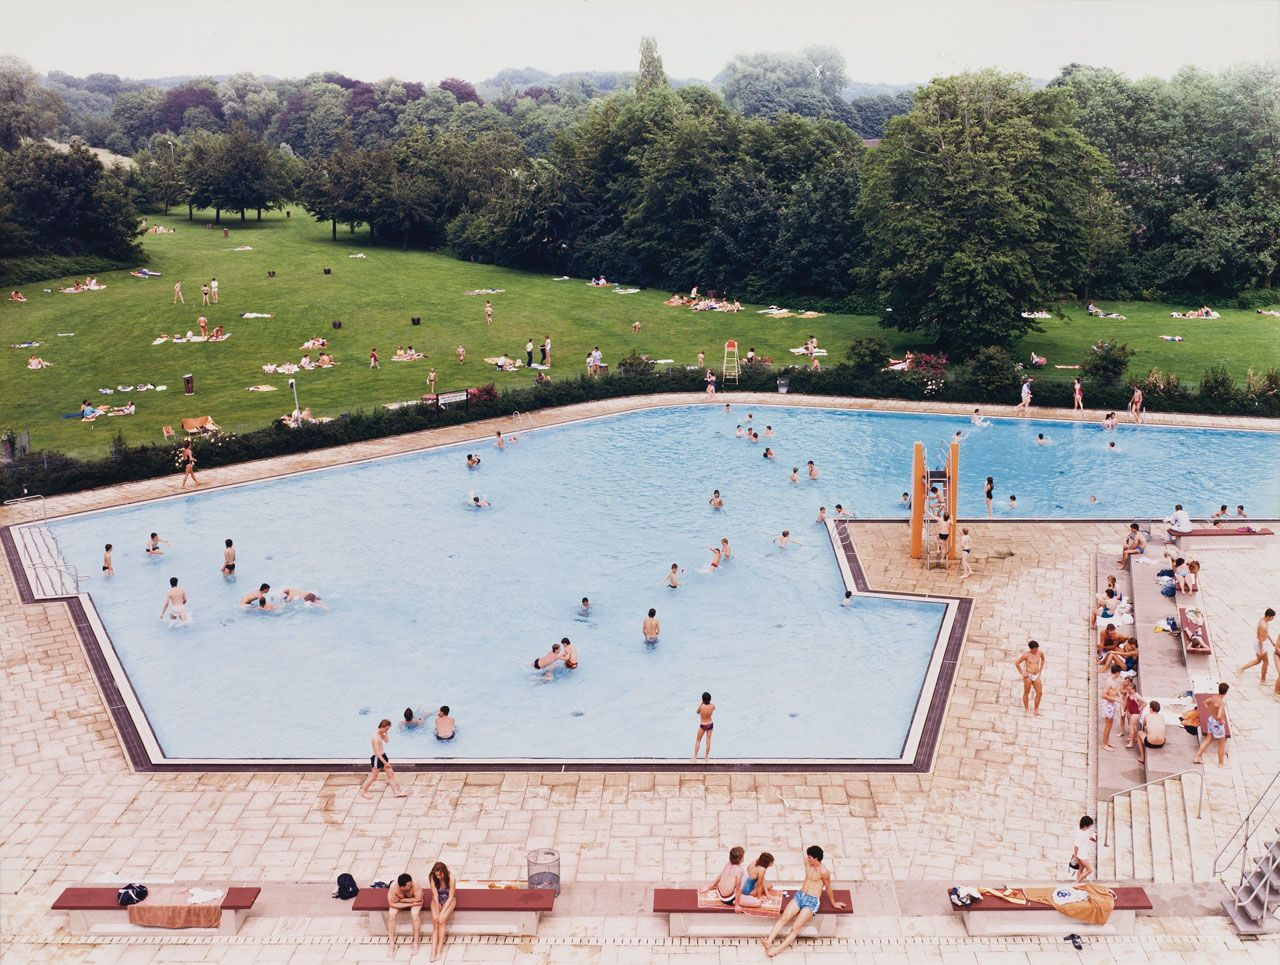 Andreas gursky ratingen schwimmbad ratingen swimming pool for Ratingen lintorf schwimmbad